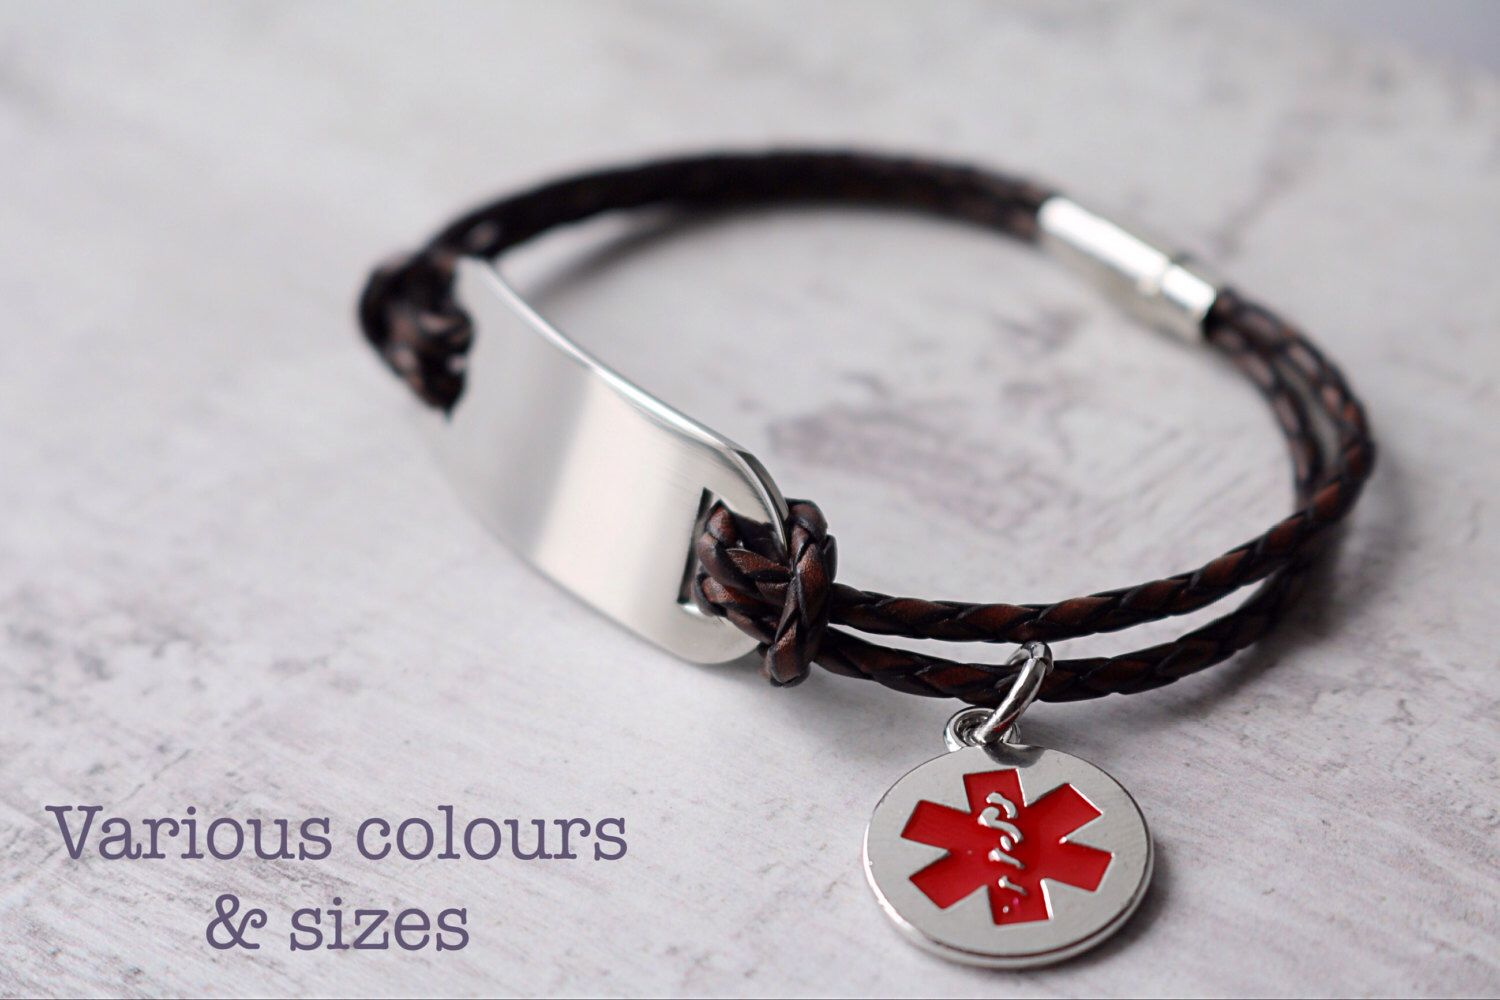 Medical alert bracelet personalized - Medical alert charm- leather bracelet - free engraving by BroadsofLondon on Etsy https://www.etsy.com/listing/233259920/medical-alert-bracelet-personalized